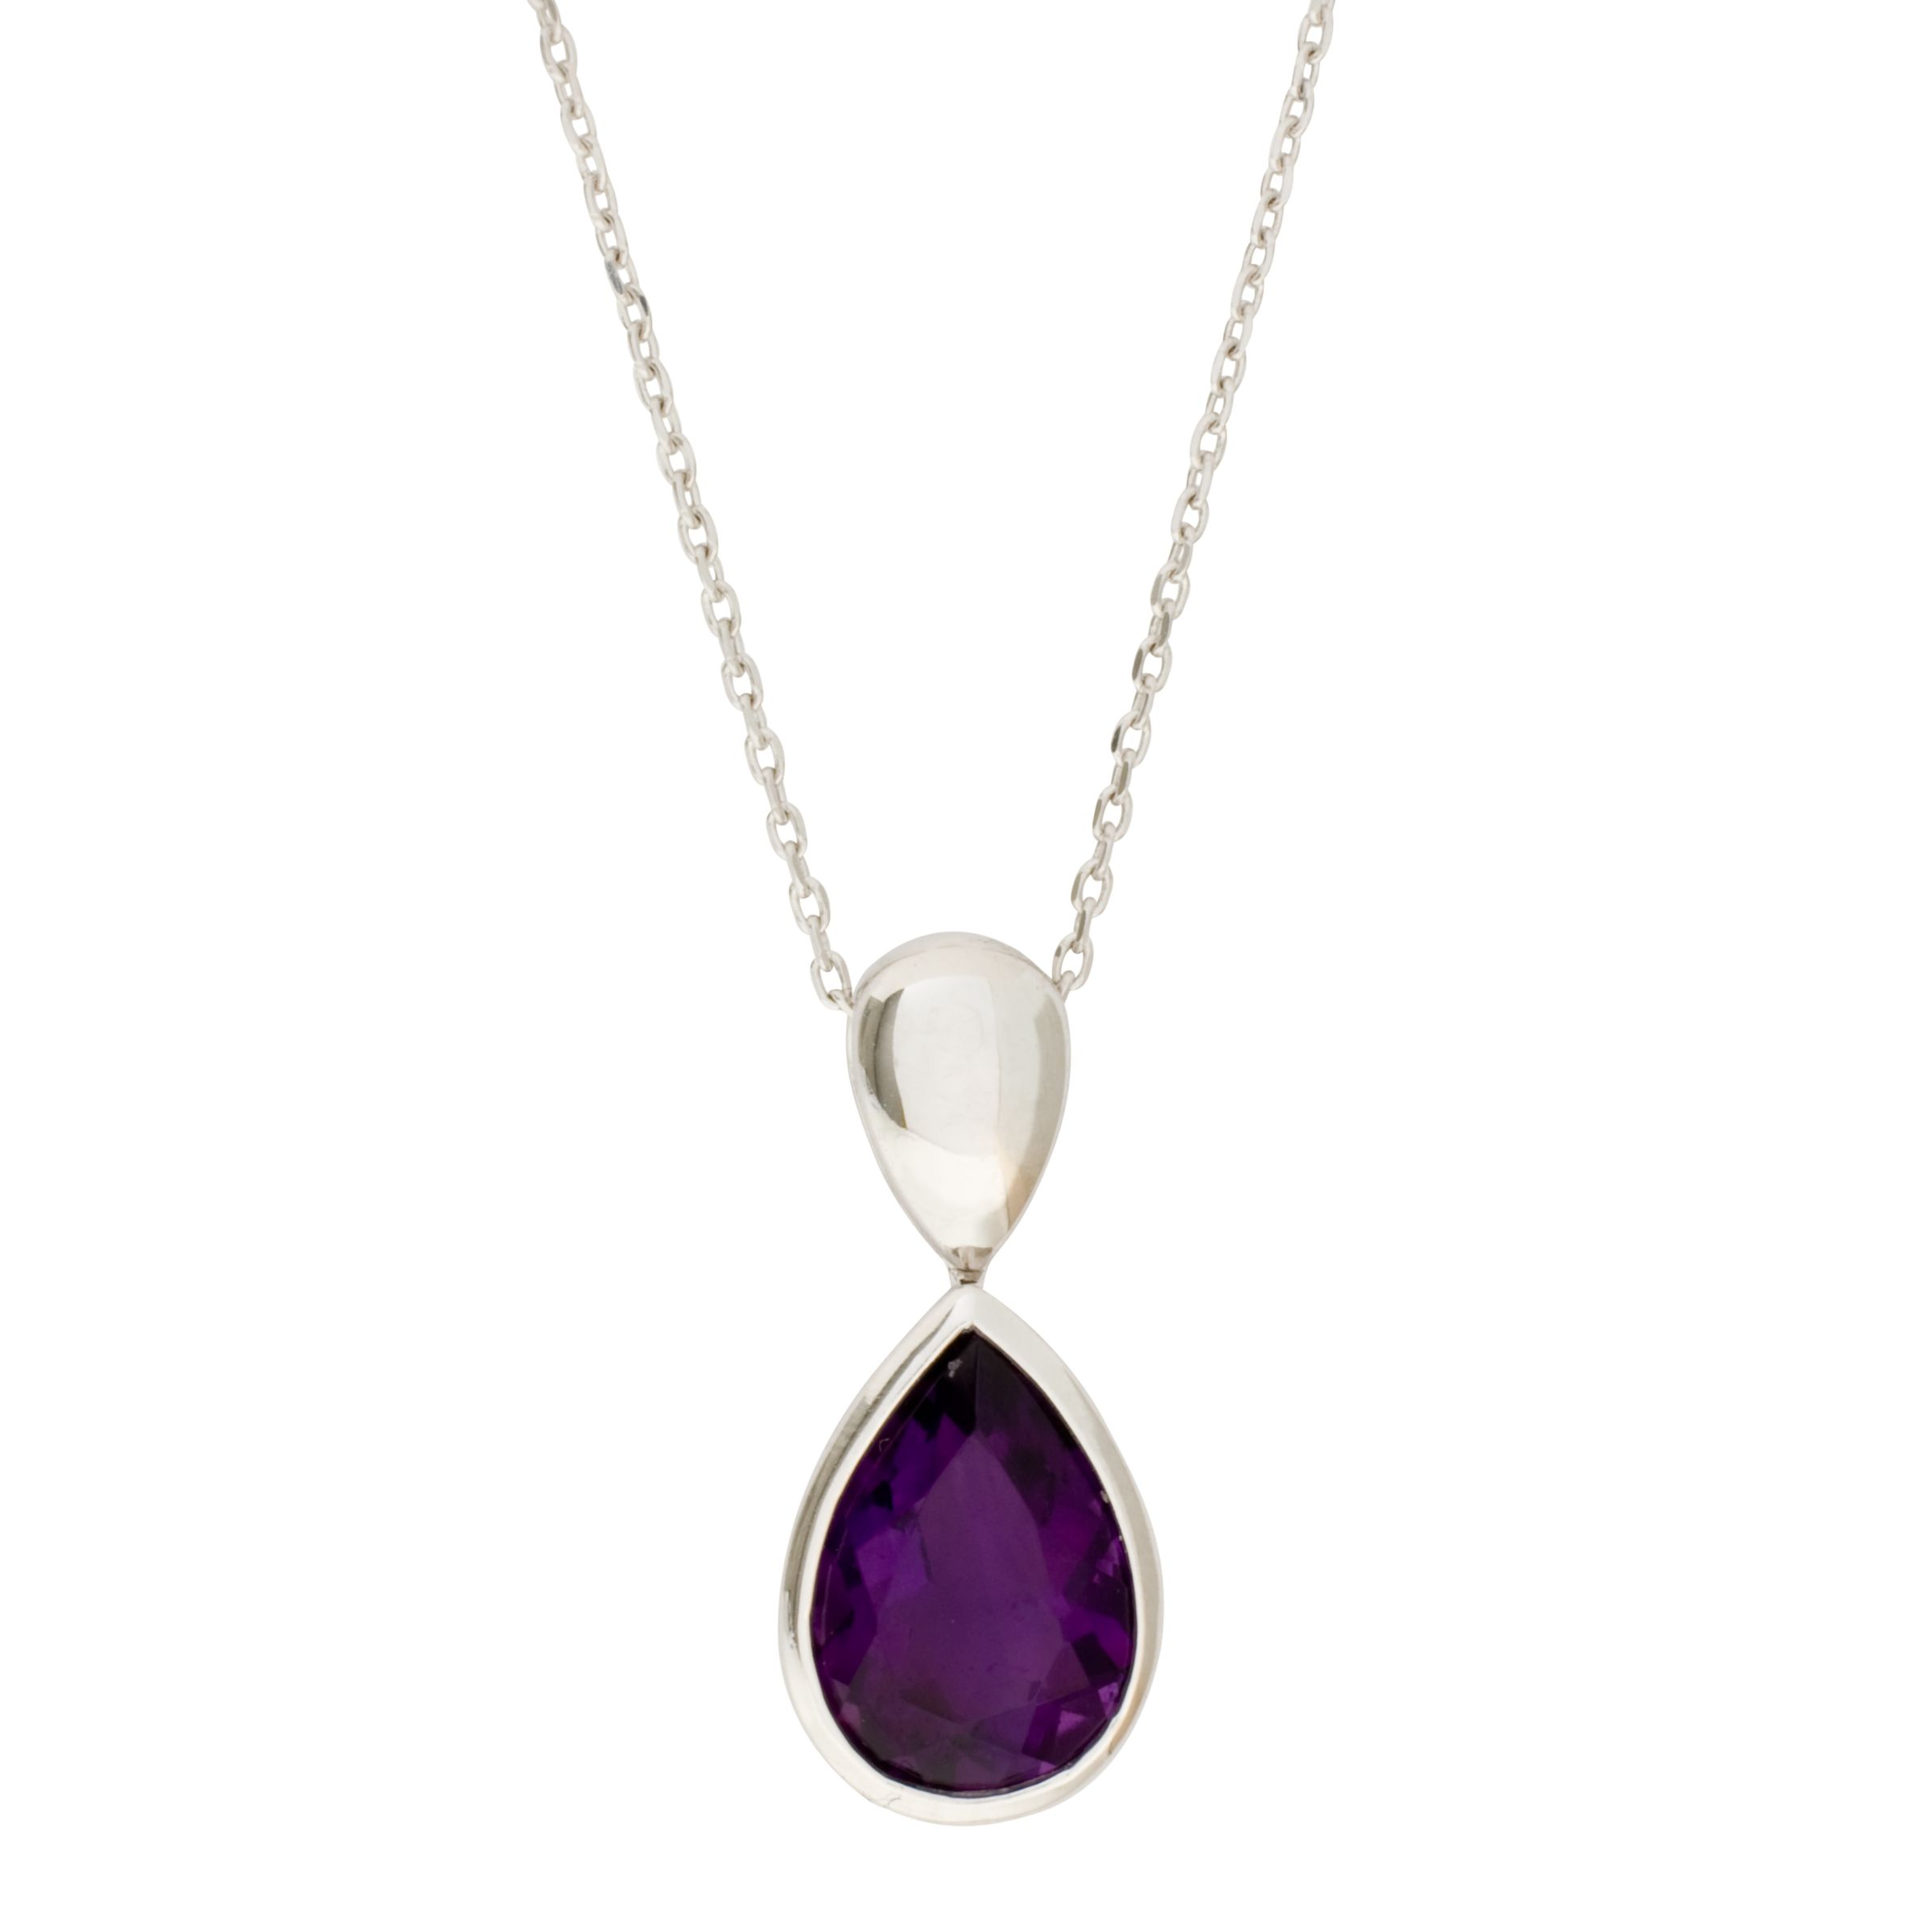 White Gold Amethyst Pendant Necklace